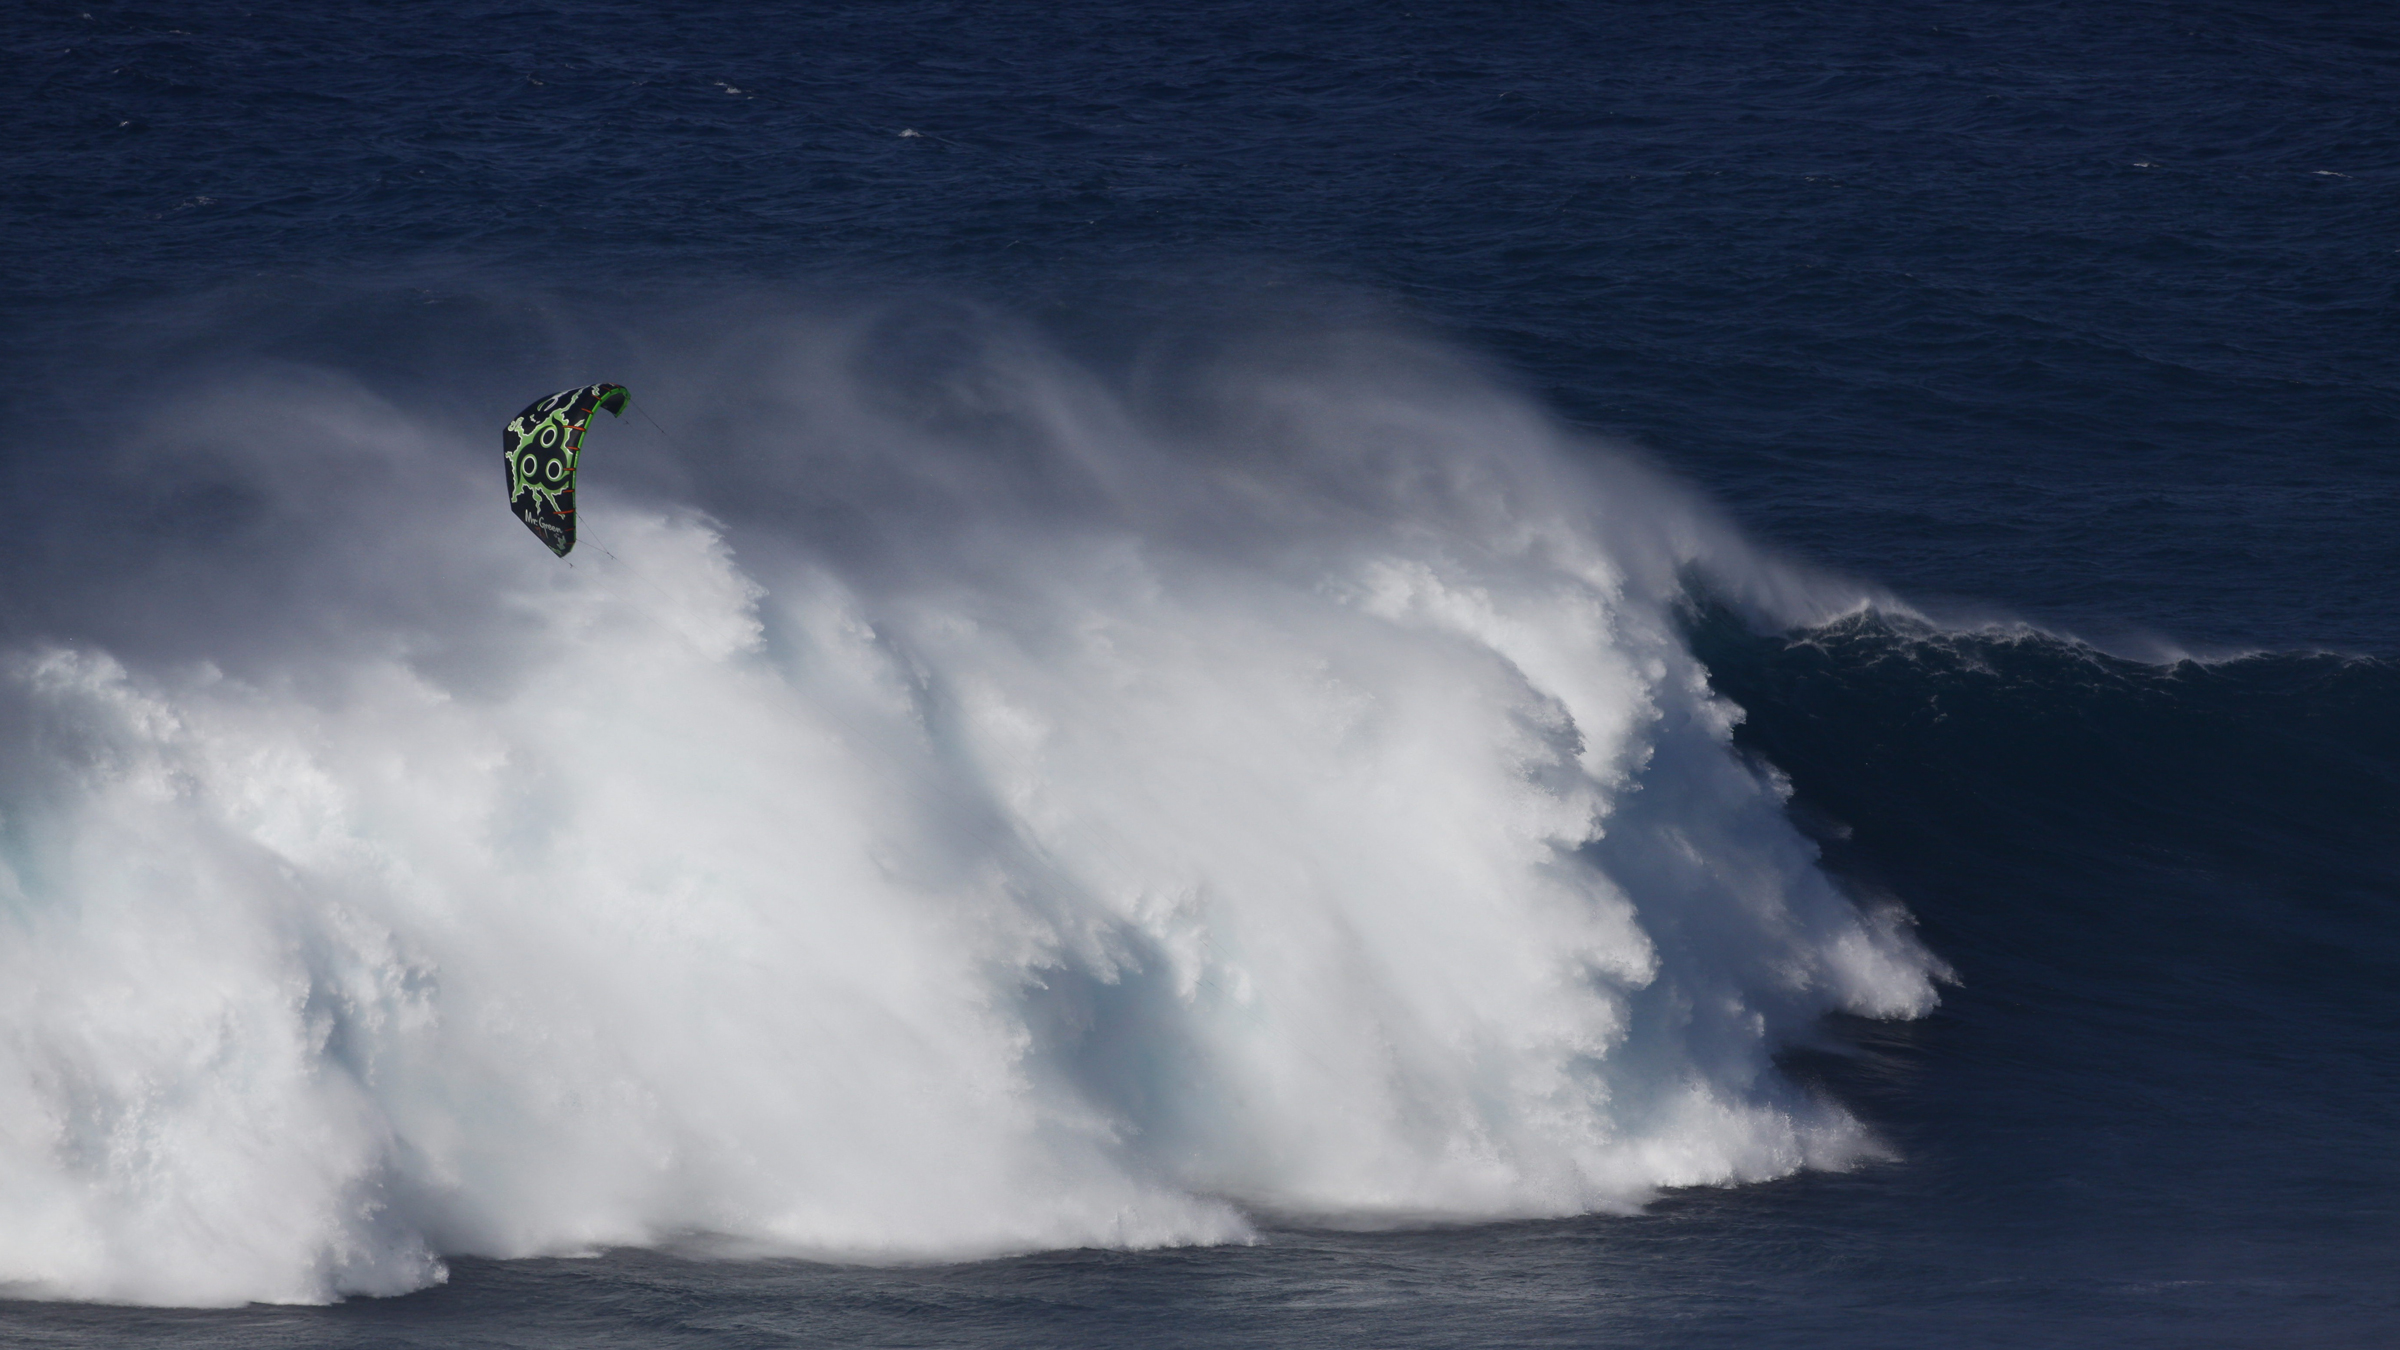 kitesurf wallpaper image - Niccolo Porcella in the grinder on a huge day at Jaws with his Wainman Hawaii Rabbit kite - in resolution: High Definition - HD 16:9 2400 X 1350